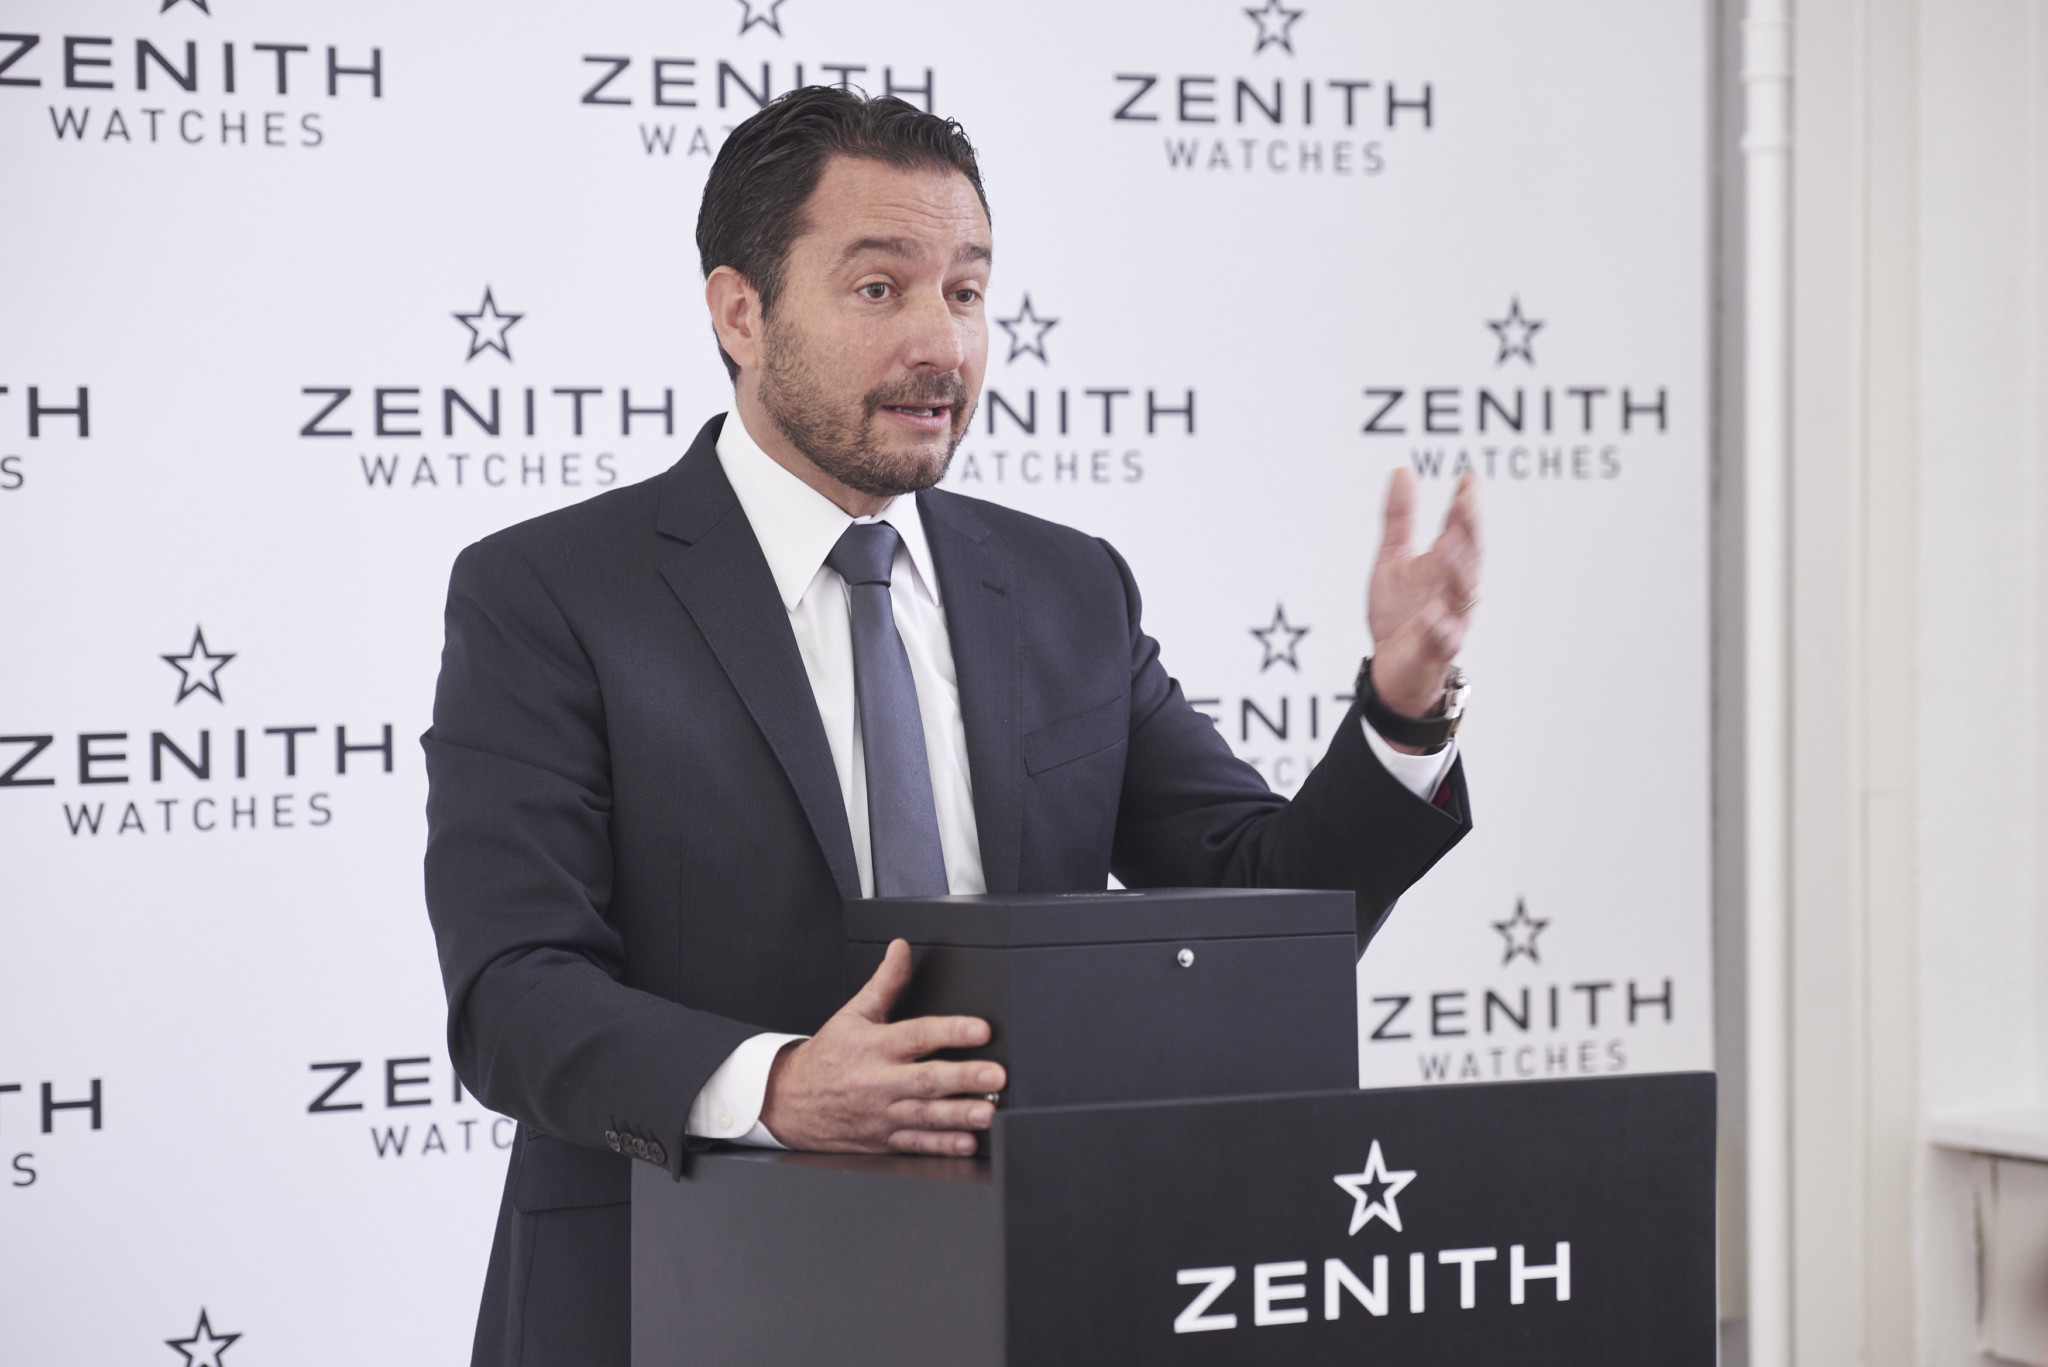 New Zenith CEO To Focus On Retail Partners, Not Boutiques